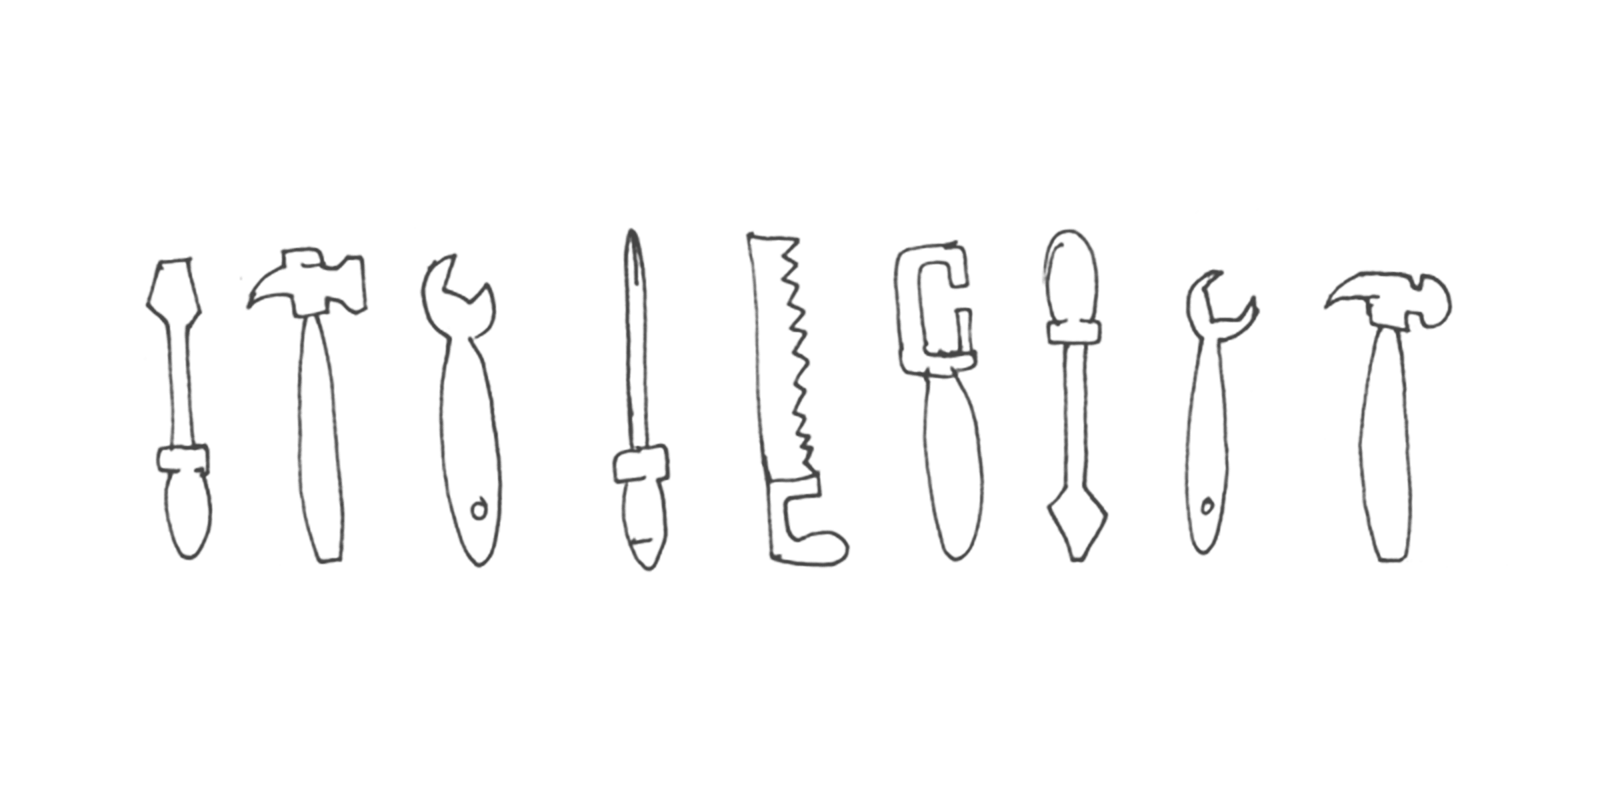 A sketch of a collection of trusty tools